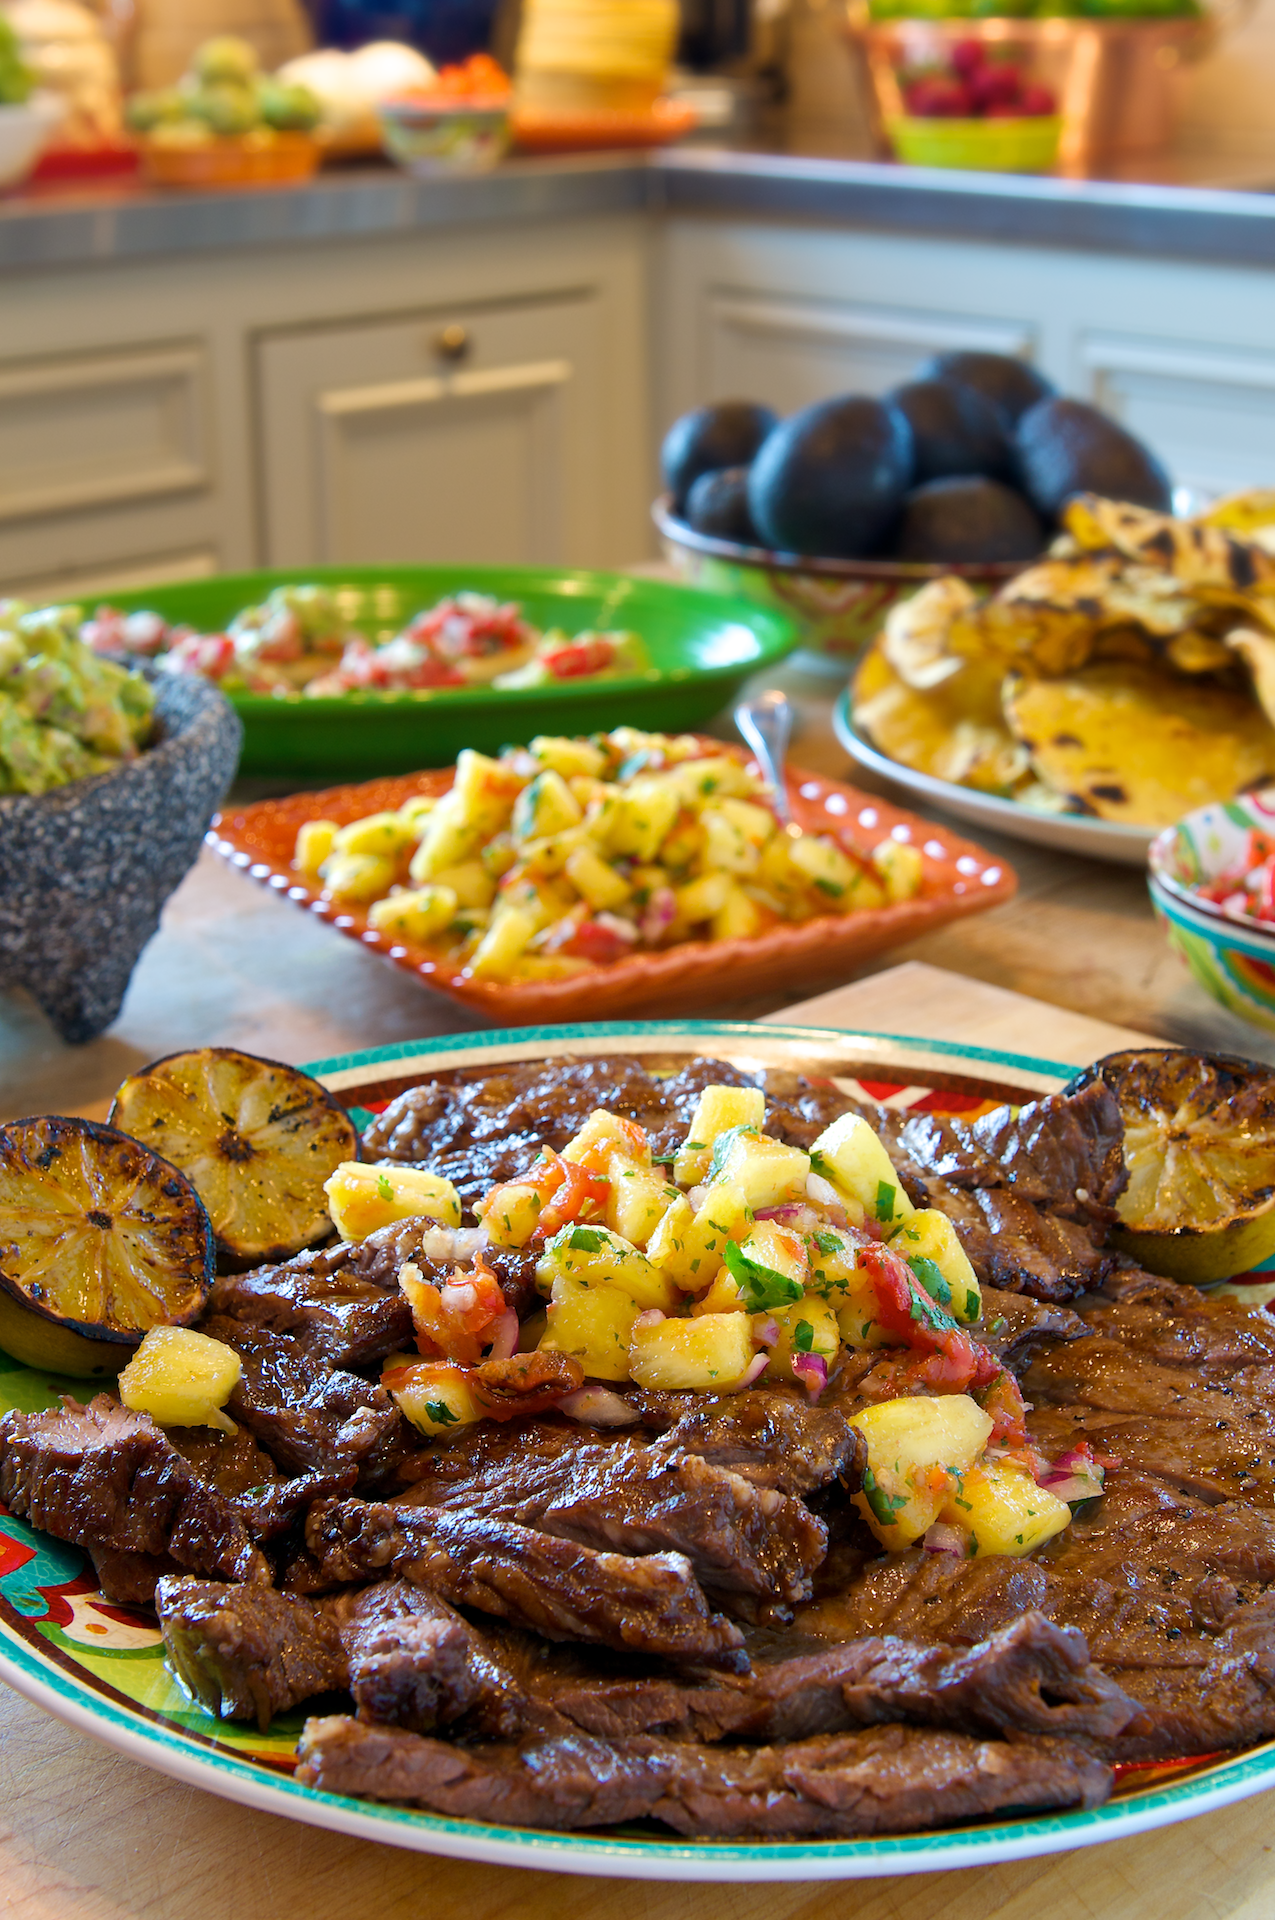 Pan sauces typically require wine to lift up the browned bits from pan-seared meats and vegetables. For a Cinco de Mayo twist, this recipe uses a dark beer, Negra Modelo, which works wonders with skirt steak.